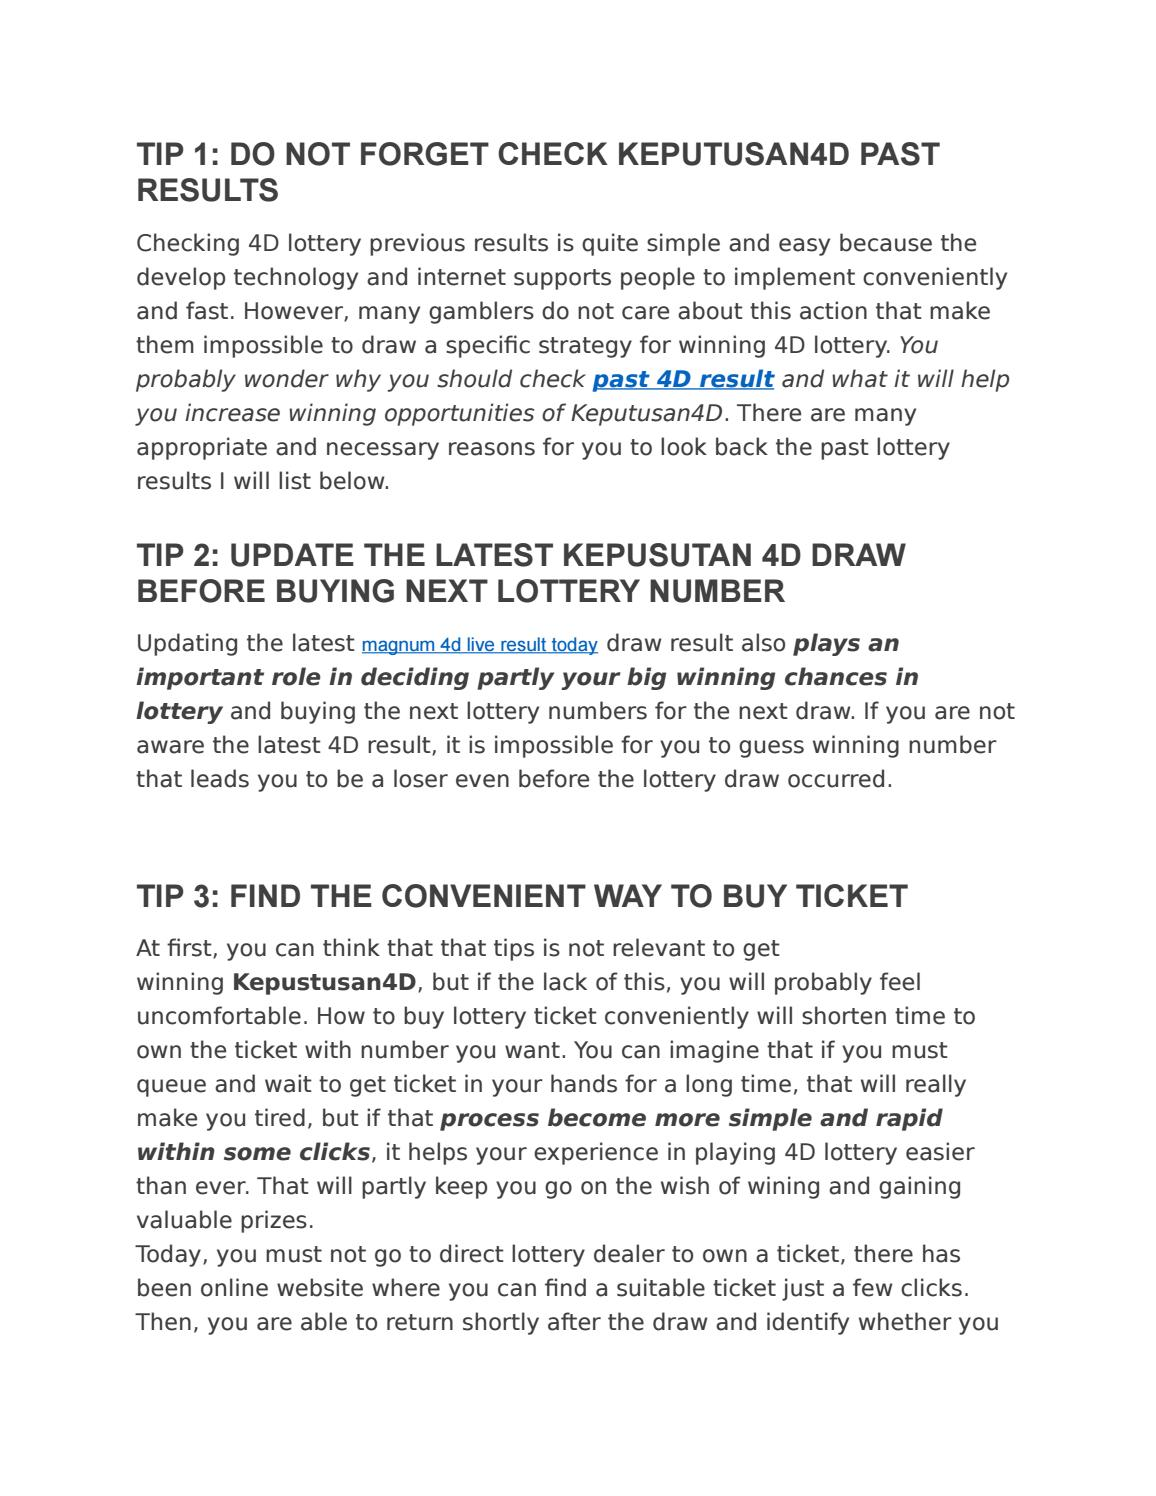 How to win toto 4d lottery by amy - issuu